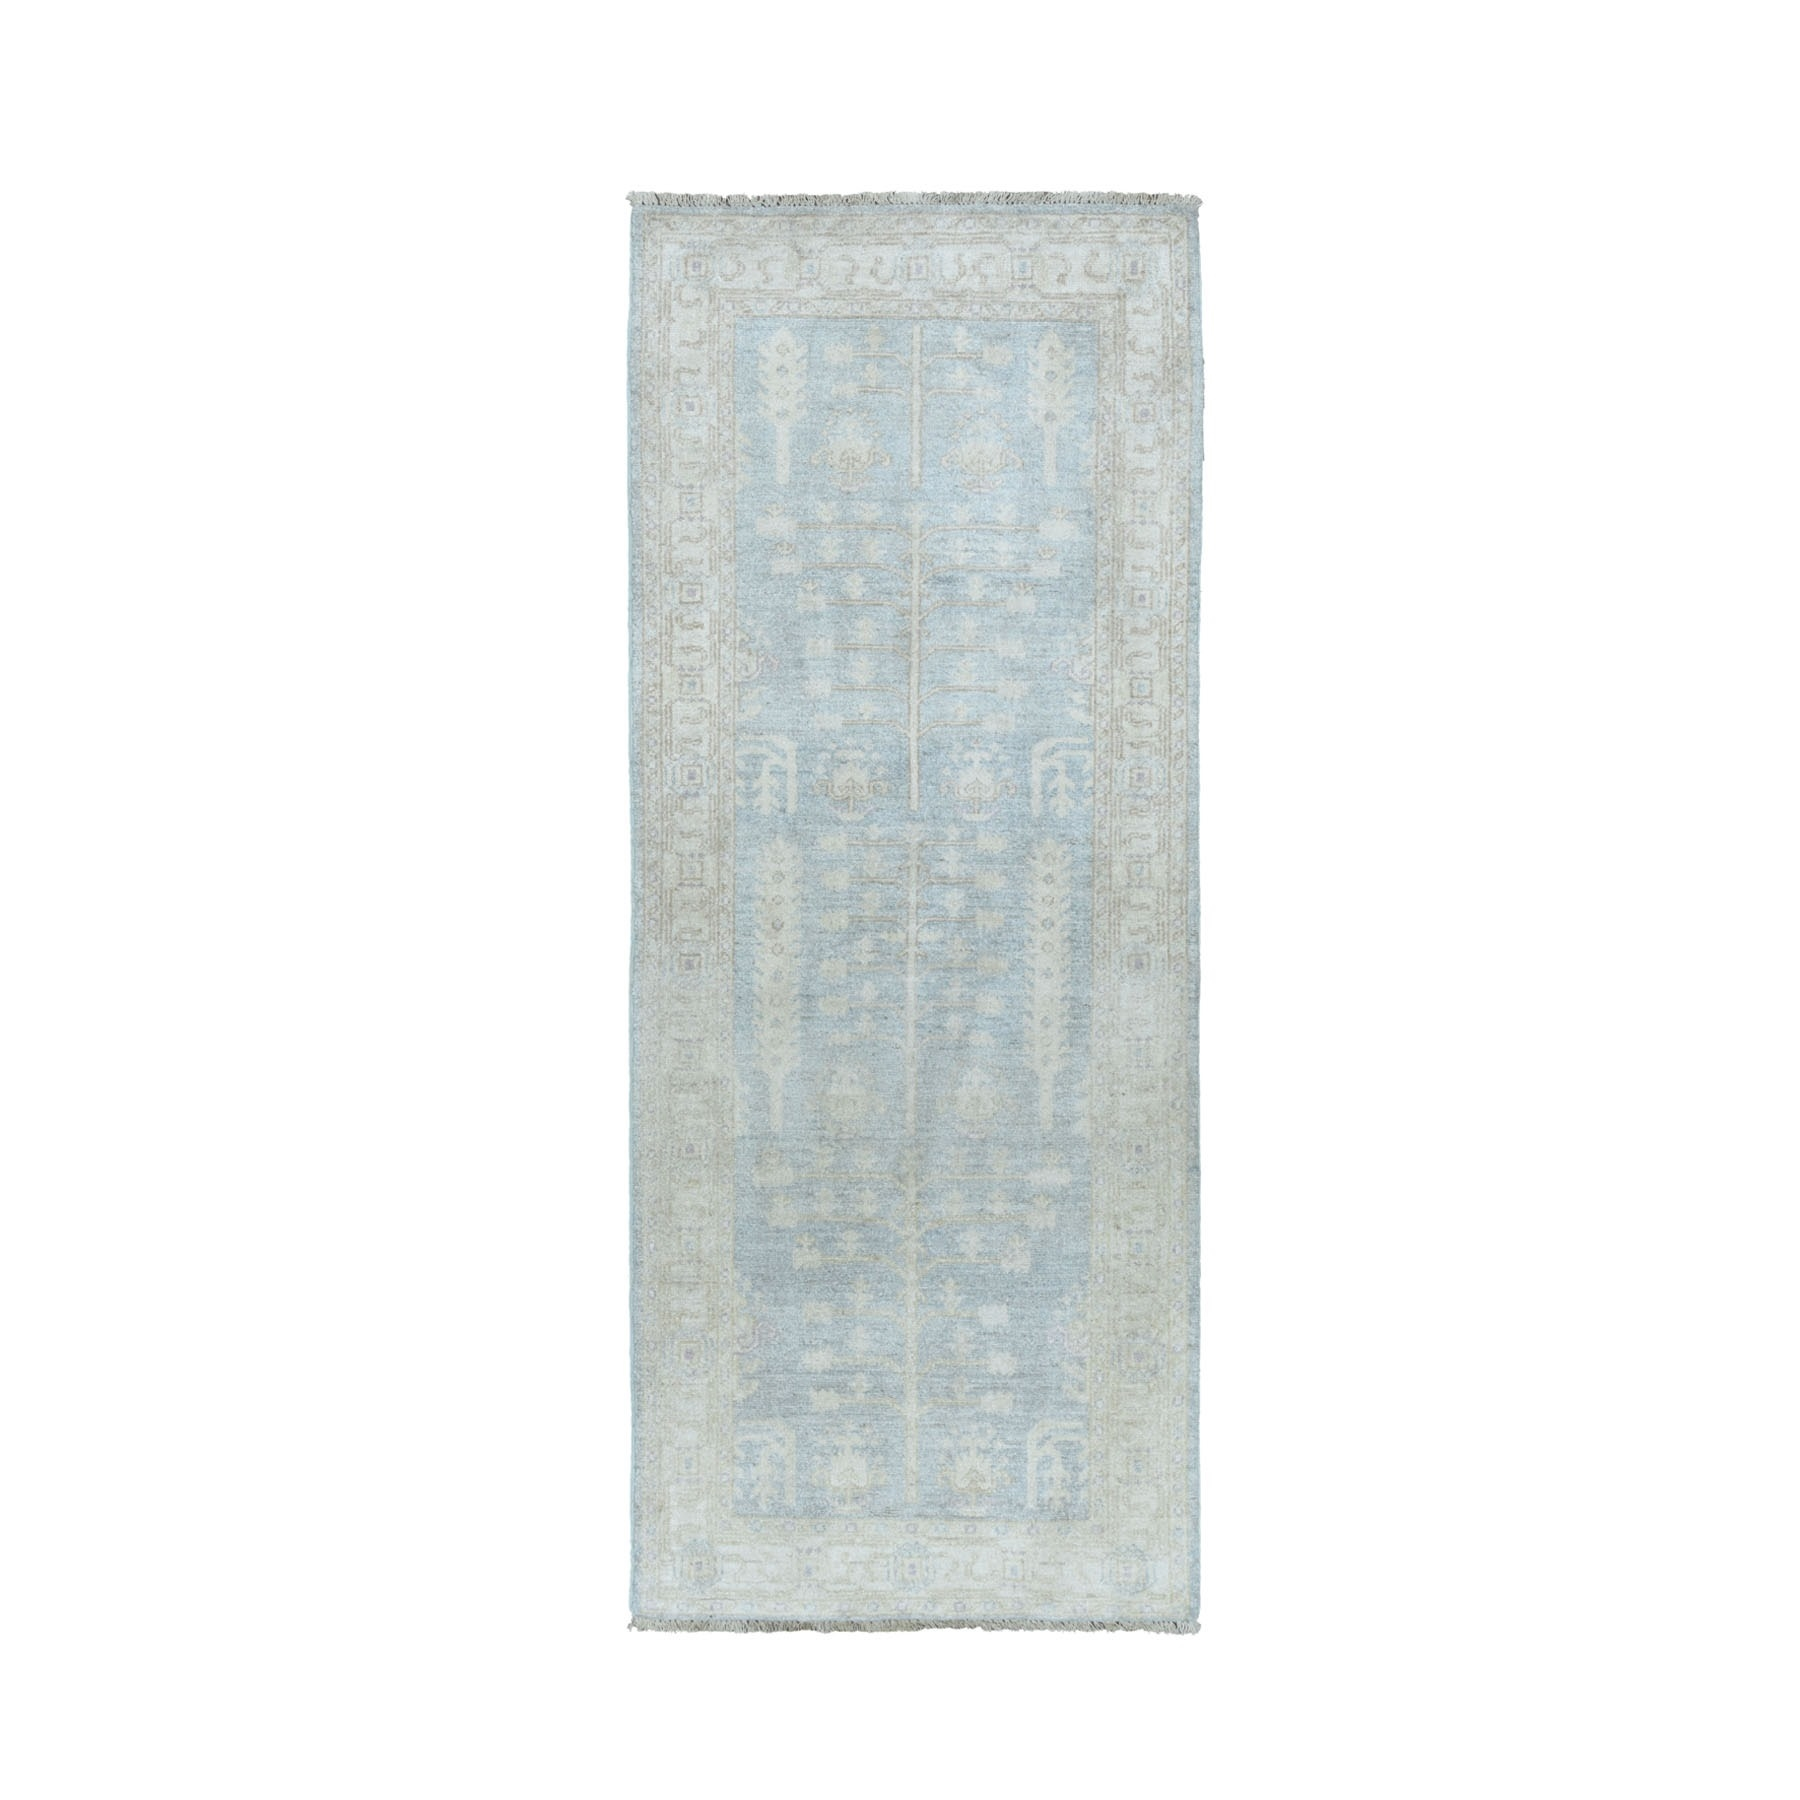 "2'7""X6'7"" White Wash Peshawar With Tree Design Pure Wool Hand Knotted Oriental Runner Rug moaeabb7"